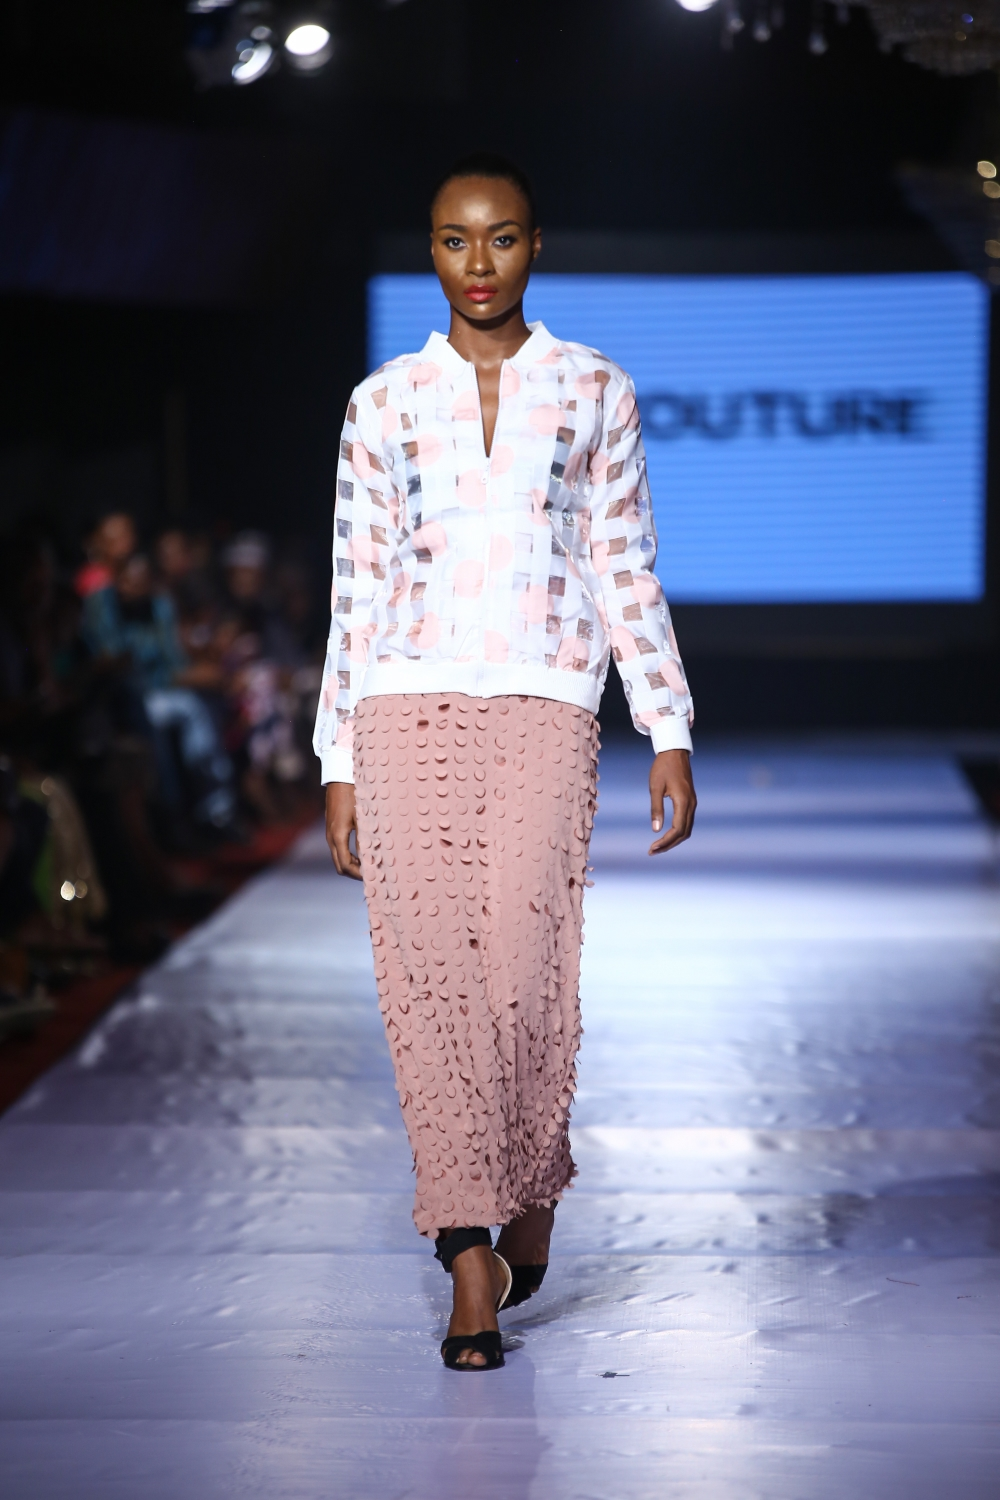 #AFWN17   Africa Fashion Week Nigeria Day 1: Oma Couture